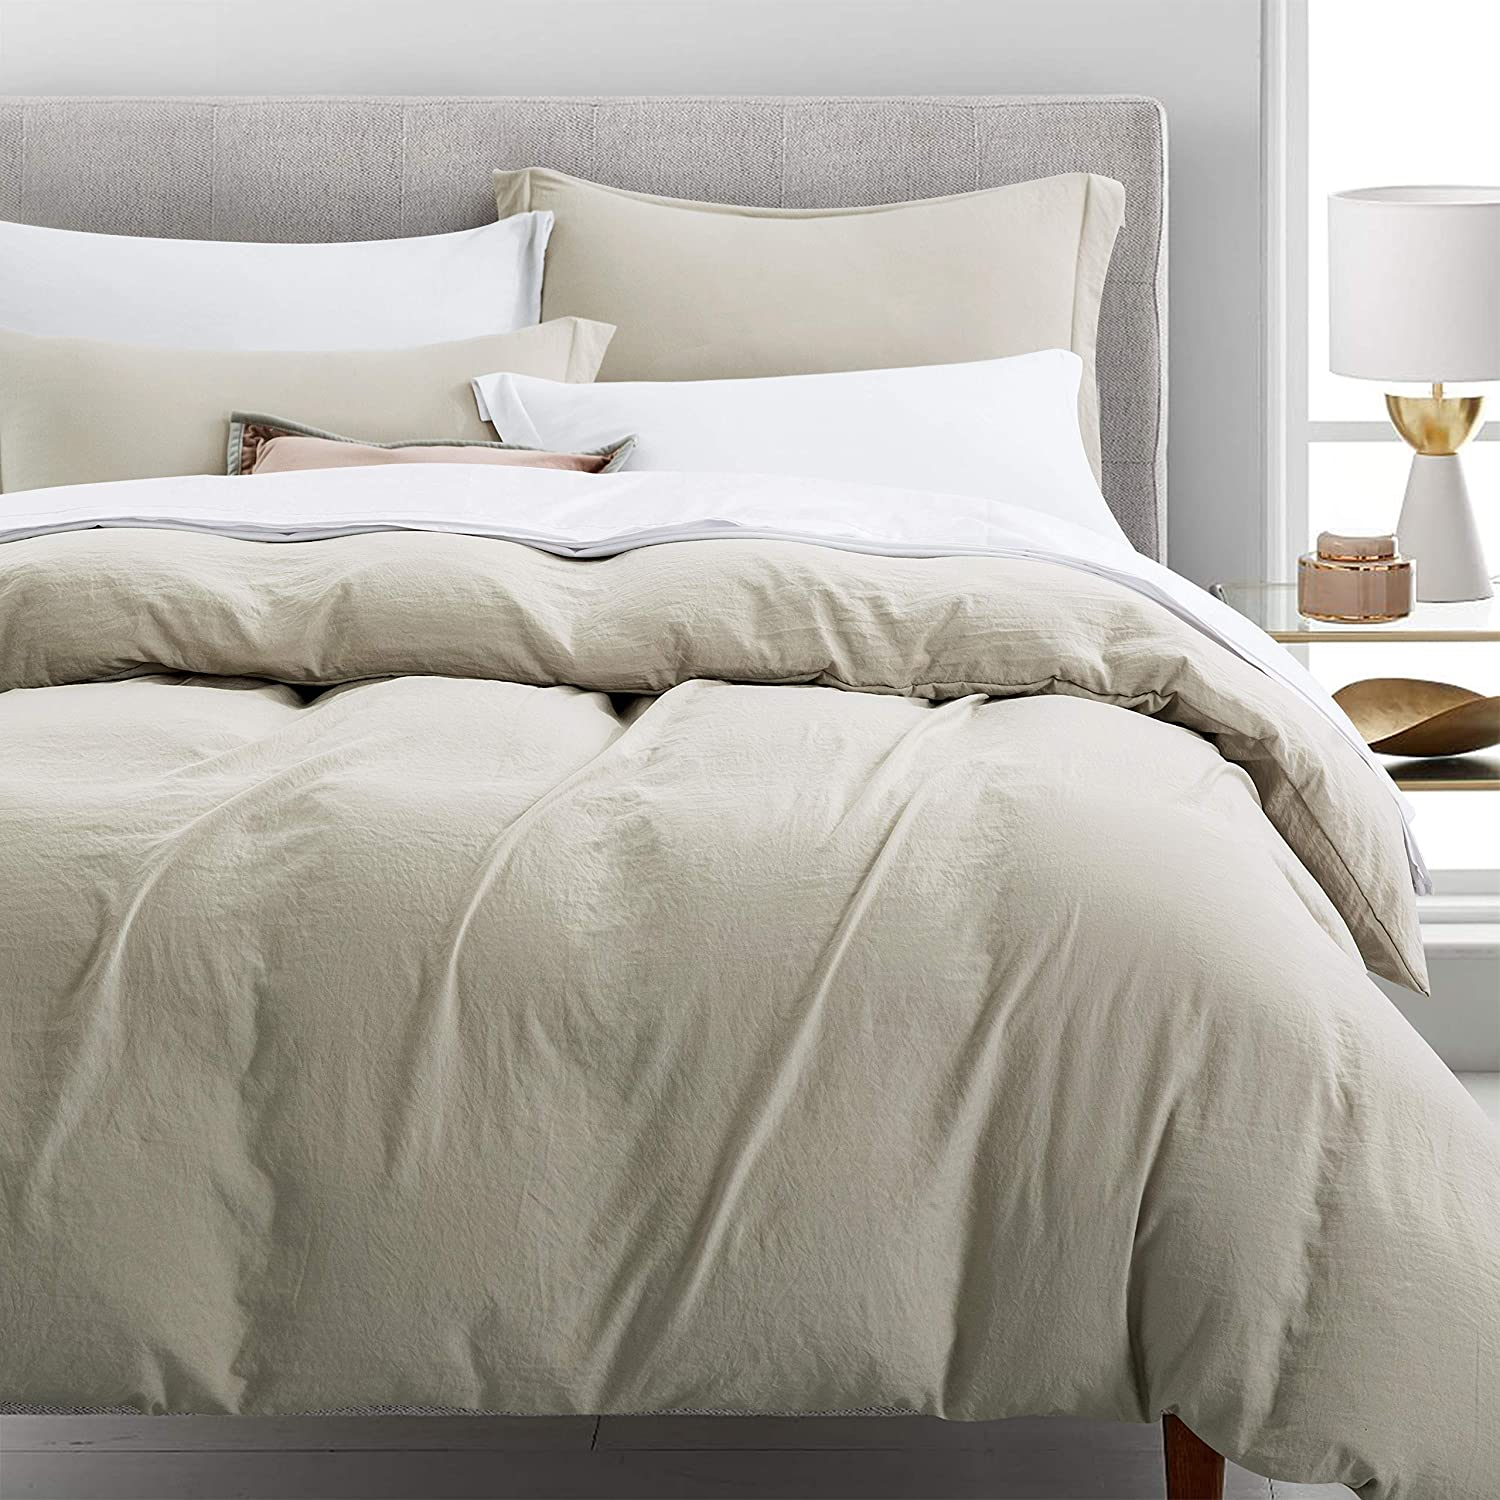 Newspin Bedding Duvet Cover Set Ultra Soft Double Brushed Microfiber 100% Washed Lightweight Comforter Cover with Hidden Zipper Closure - 3 Piece King Duvet Cover, Moon Beam